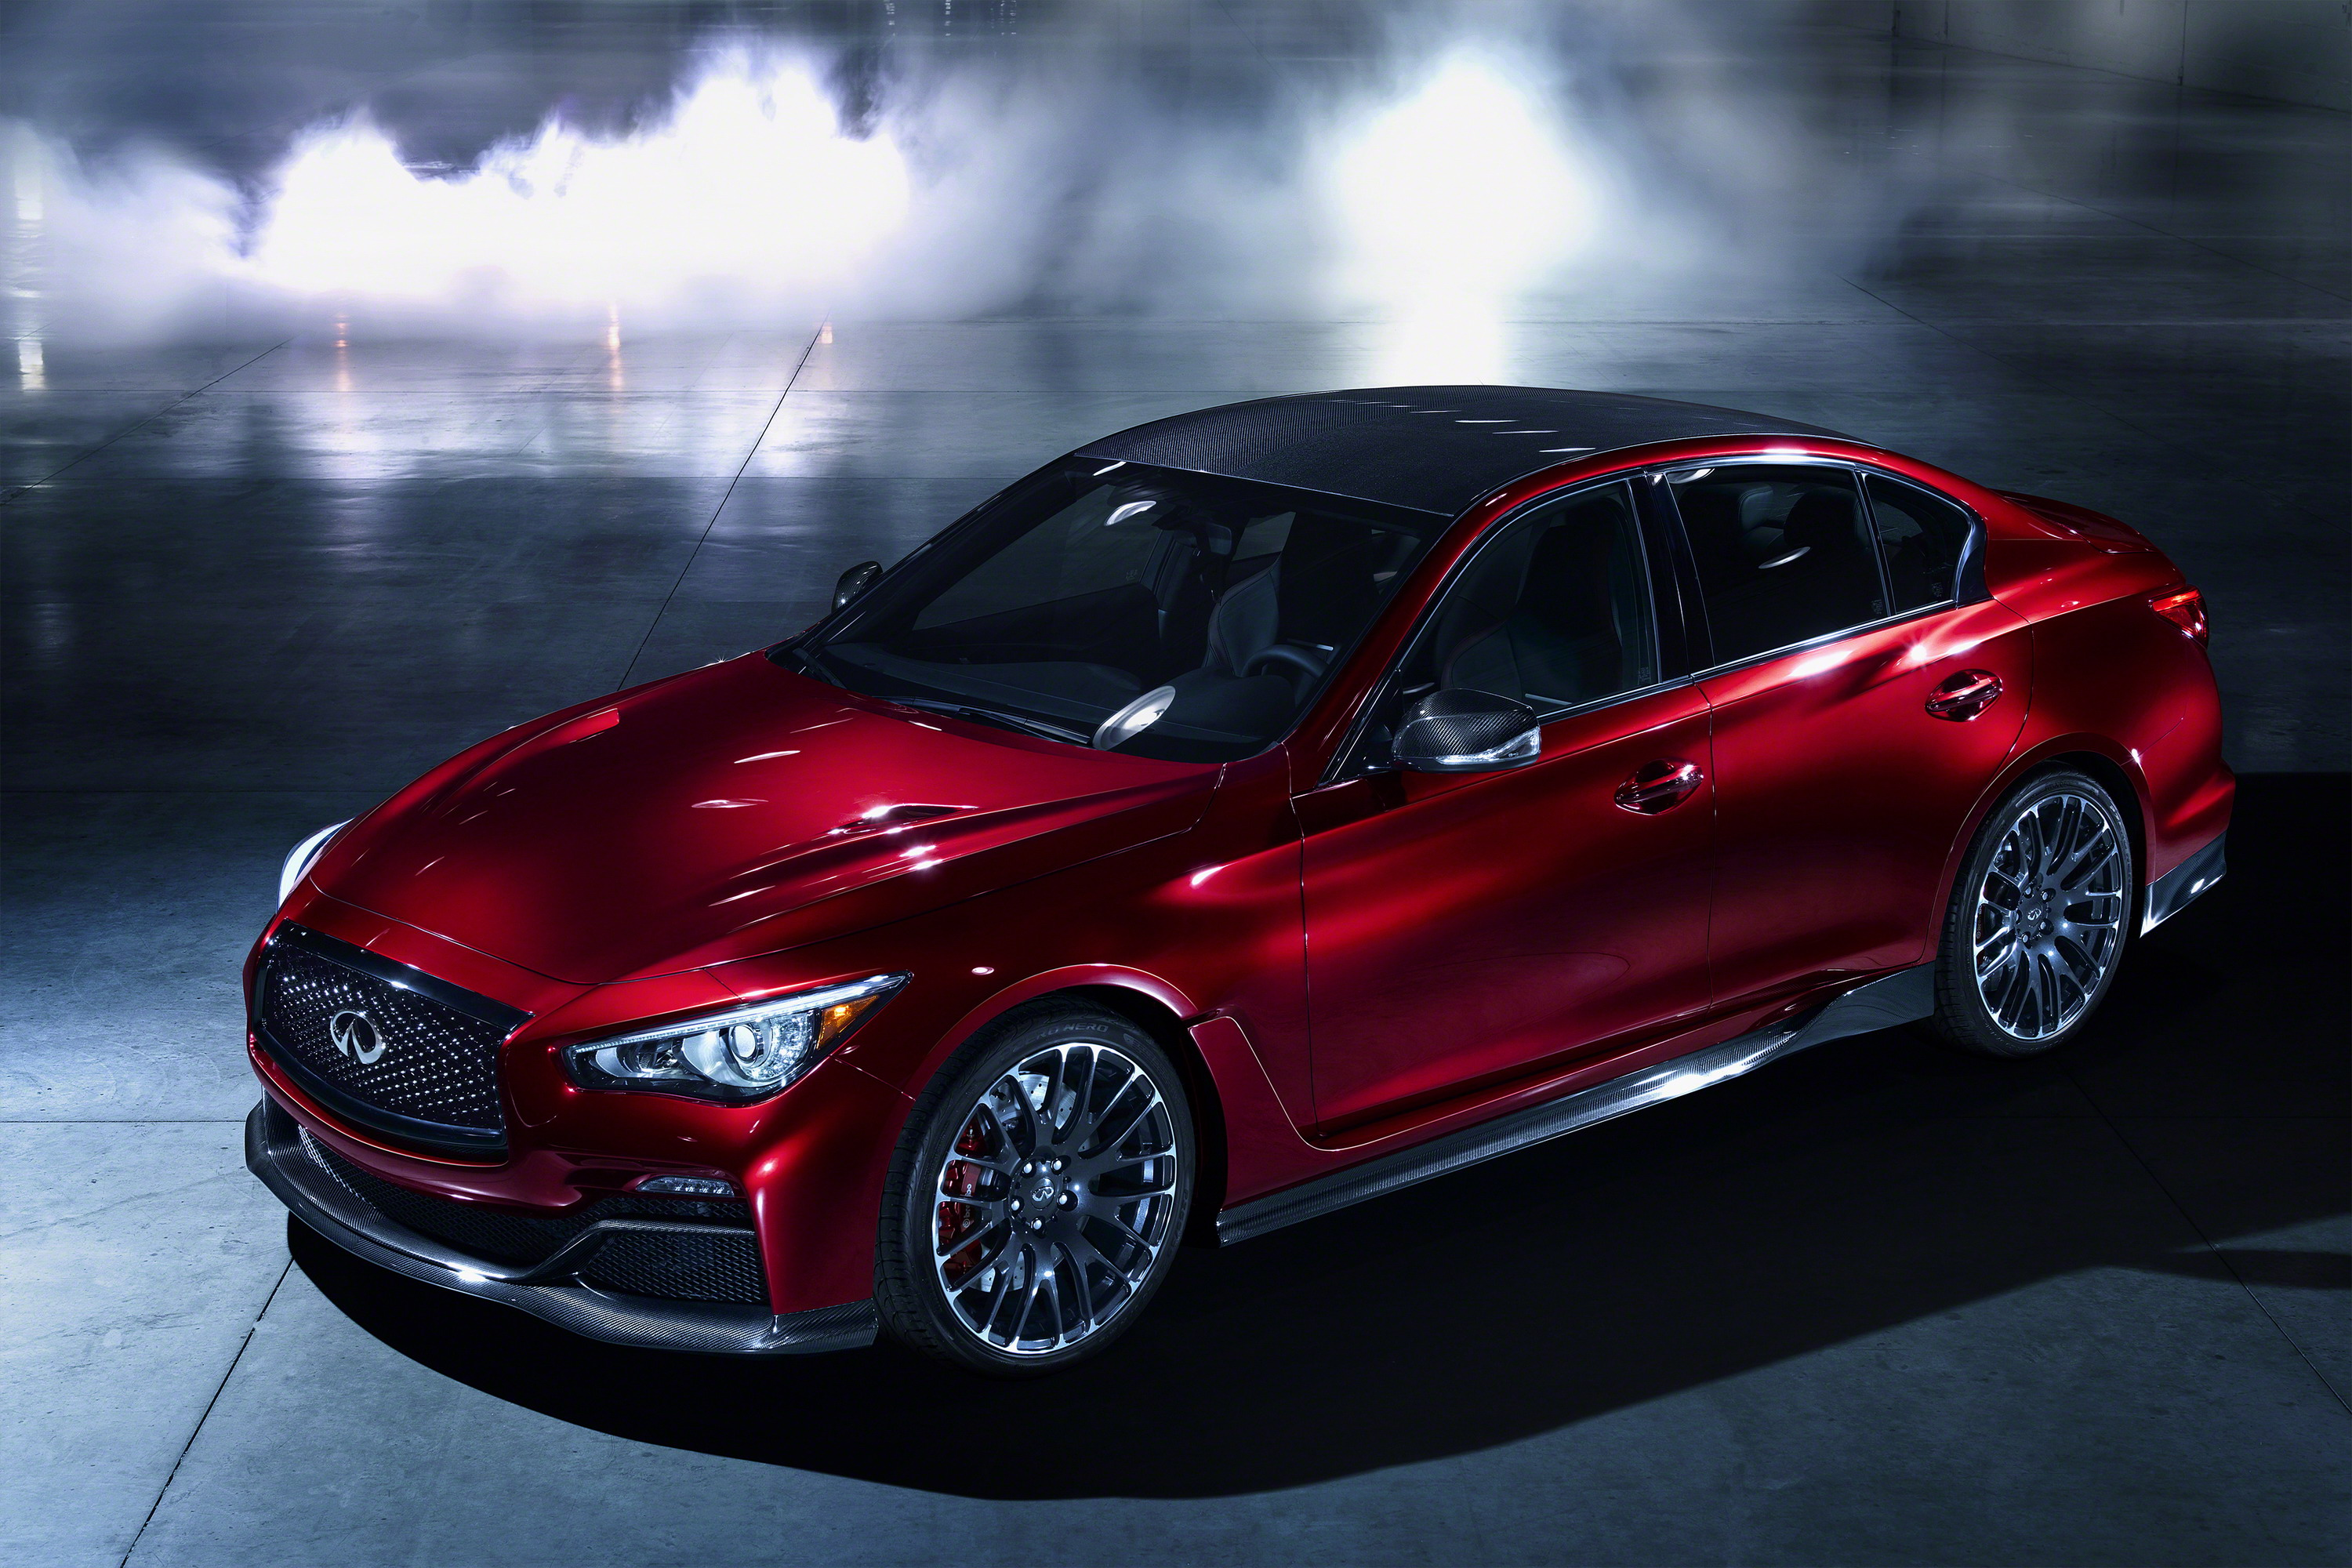 2014 Infiniti Q50 Eau Rouge | Top Speed